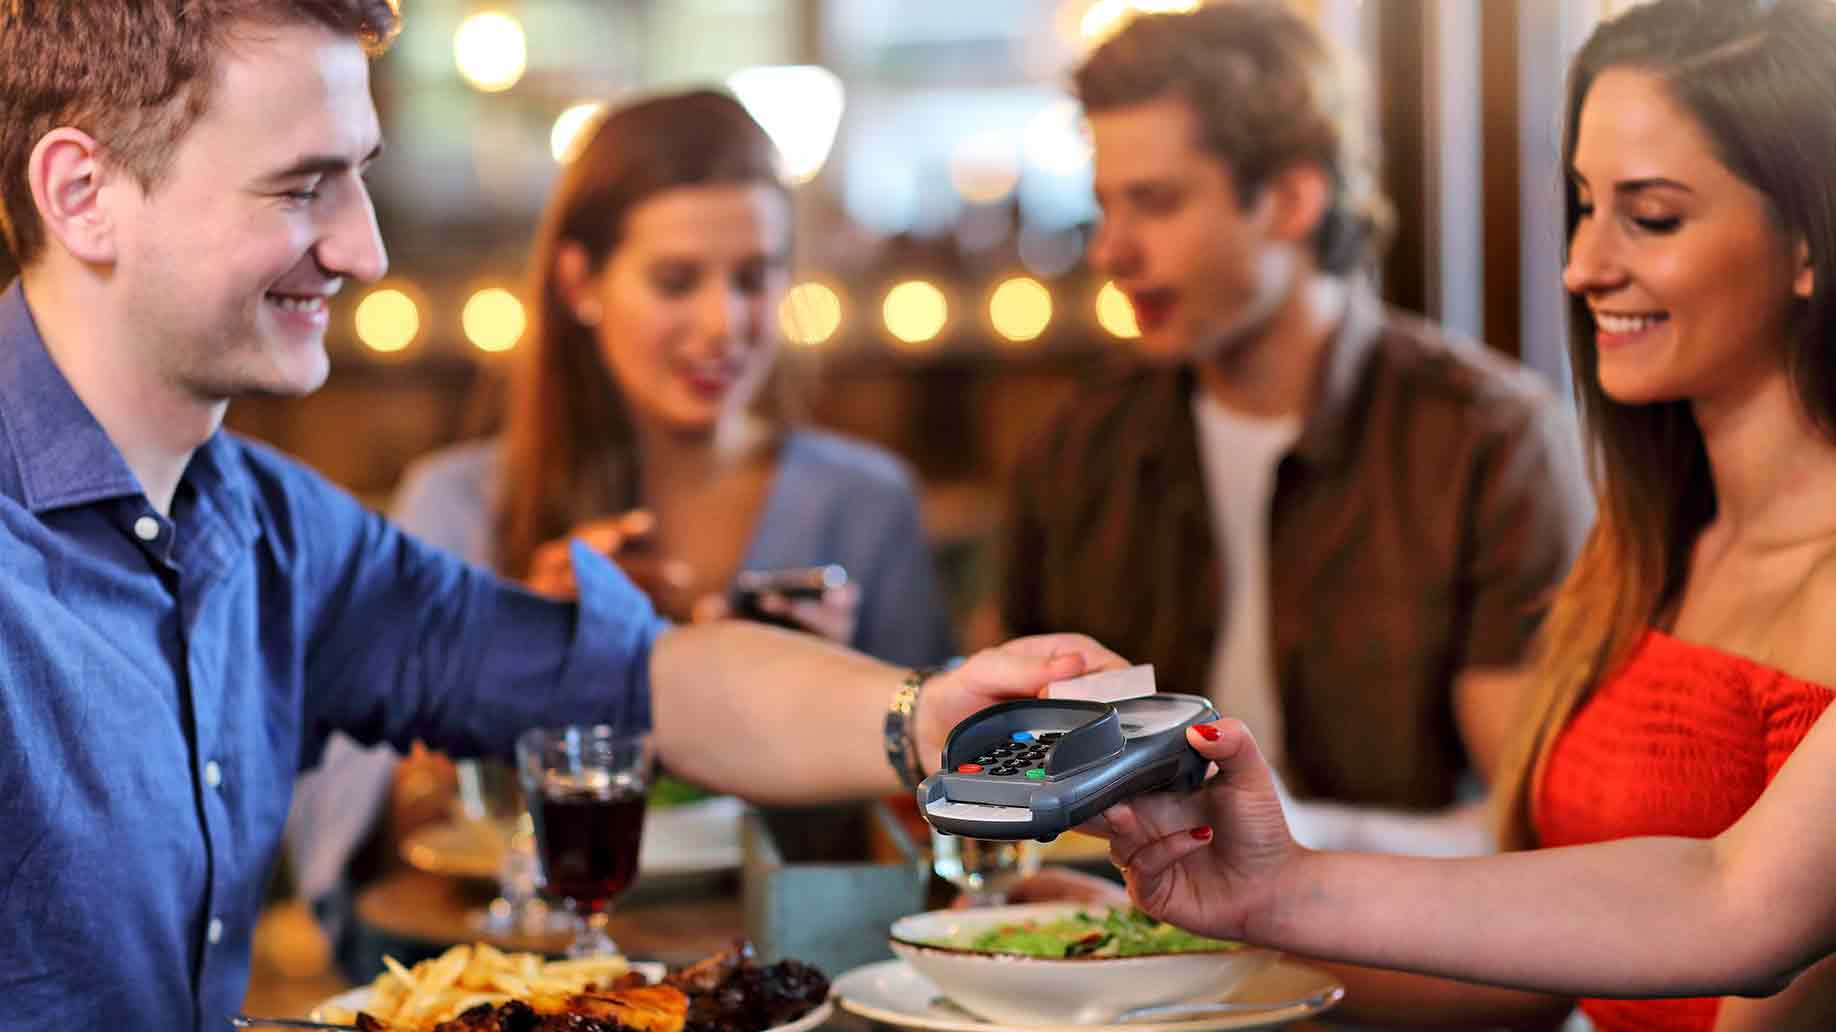 group of fFriends paying for meal in restaurant